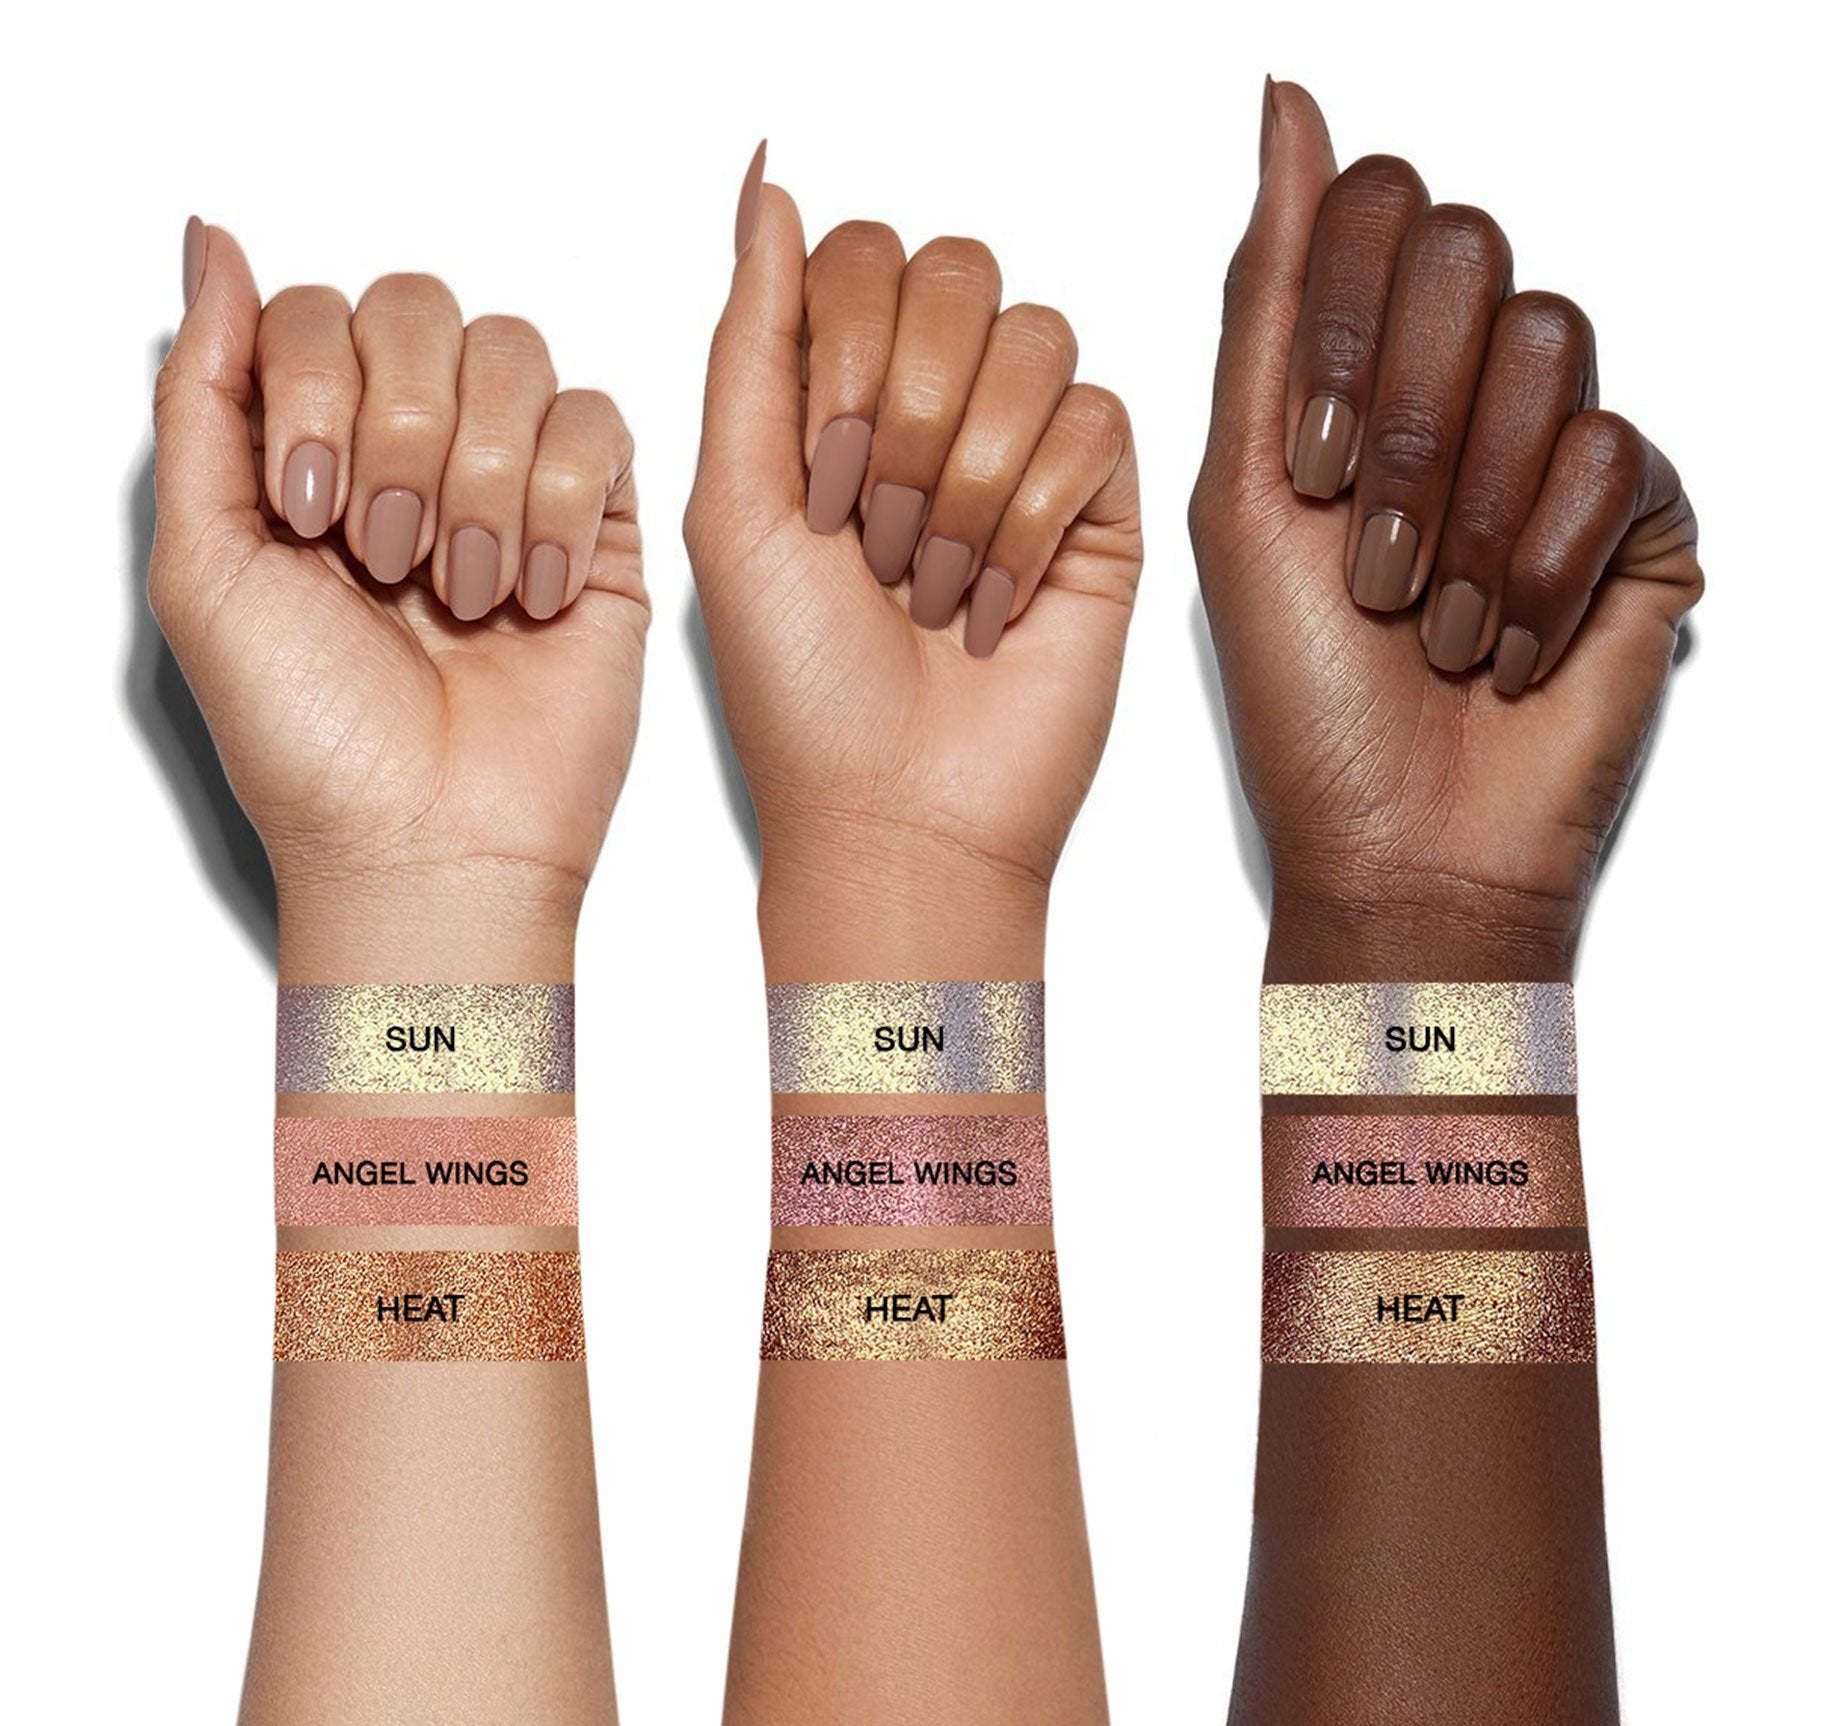 ENLIGHT HALO POWDER - ANGEL WINGS ARM SWATCHES, view larger image